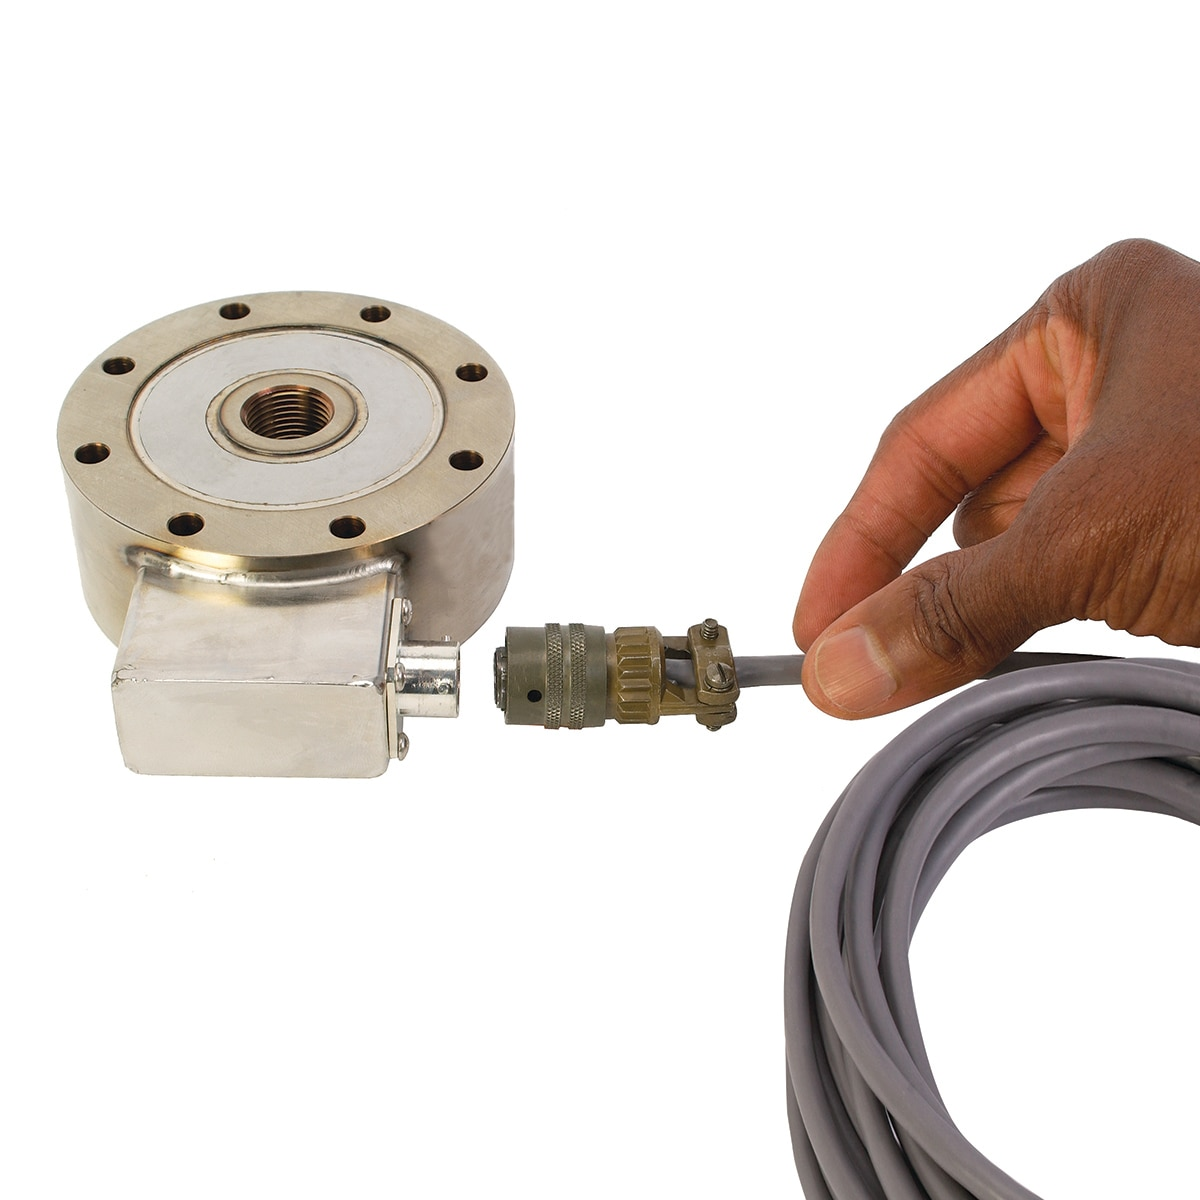 Twist Lock Cable Assemblies for Pressure Transducers and Load Cells